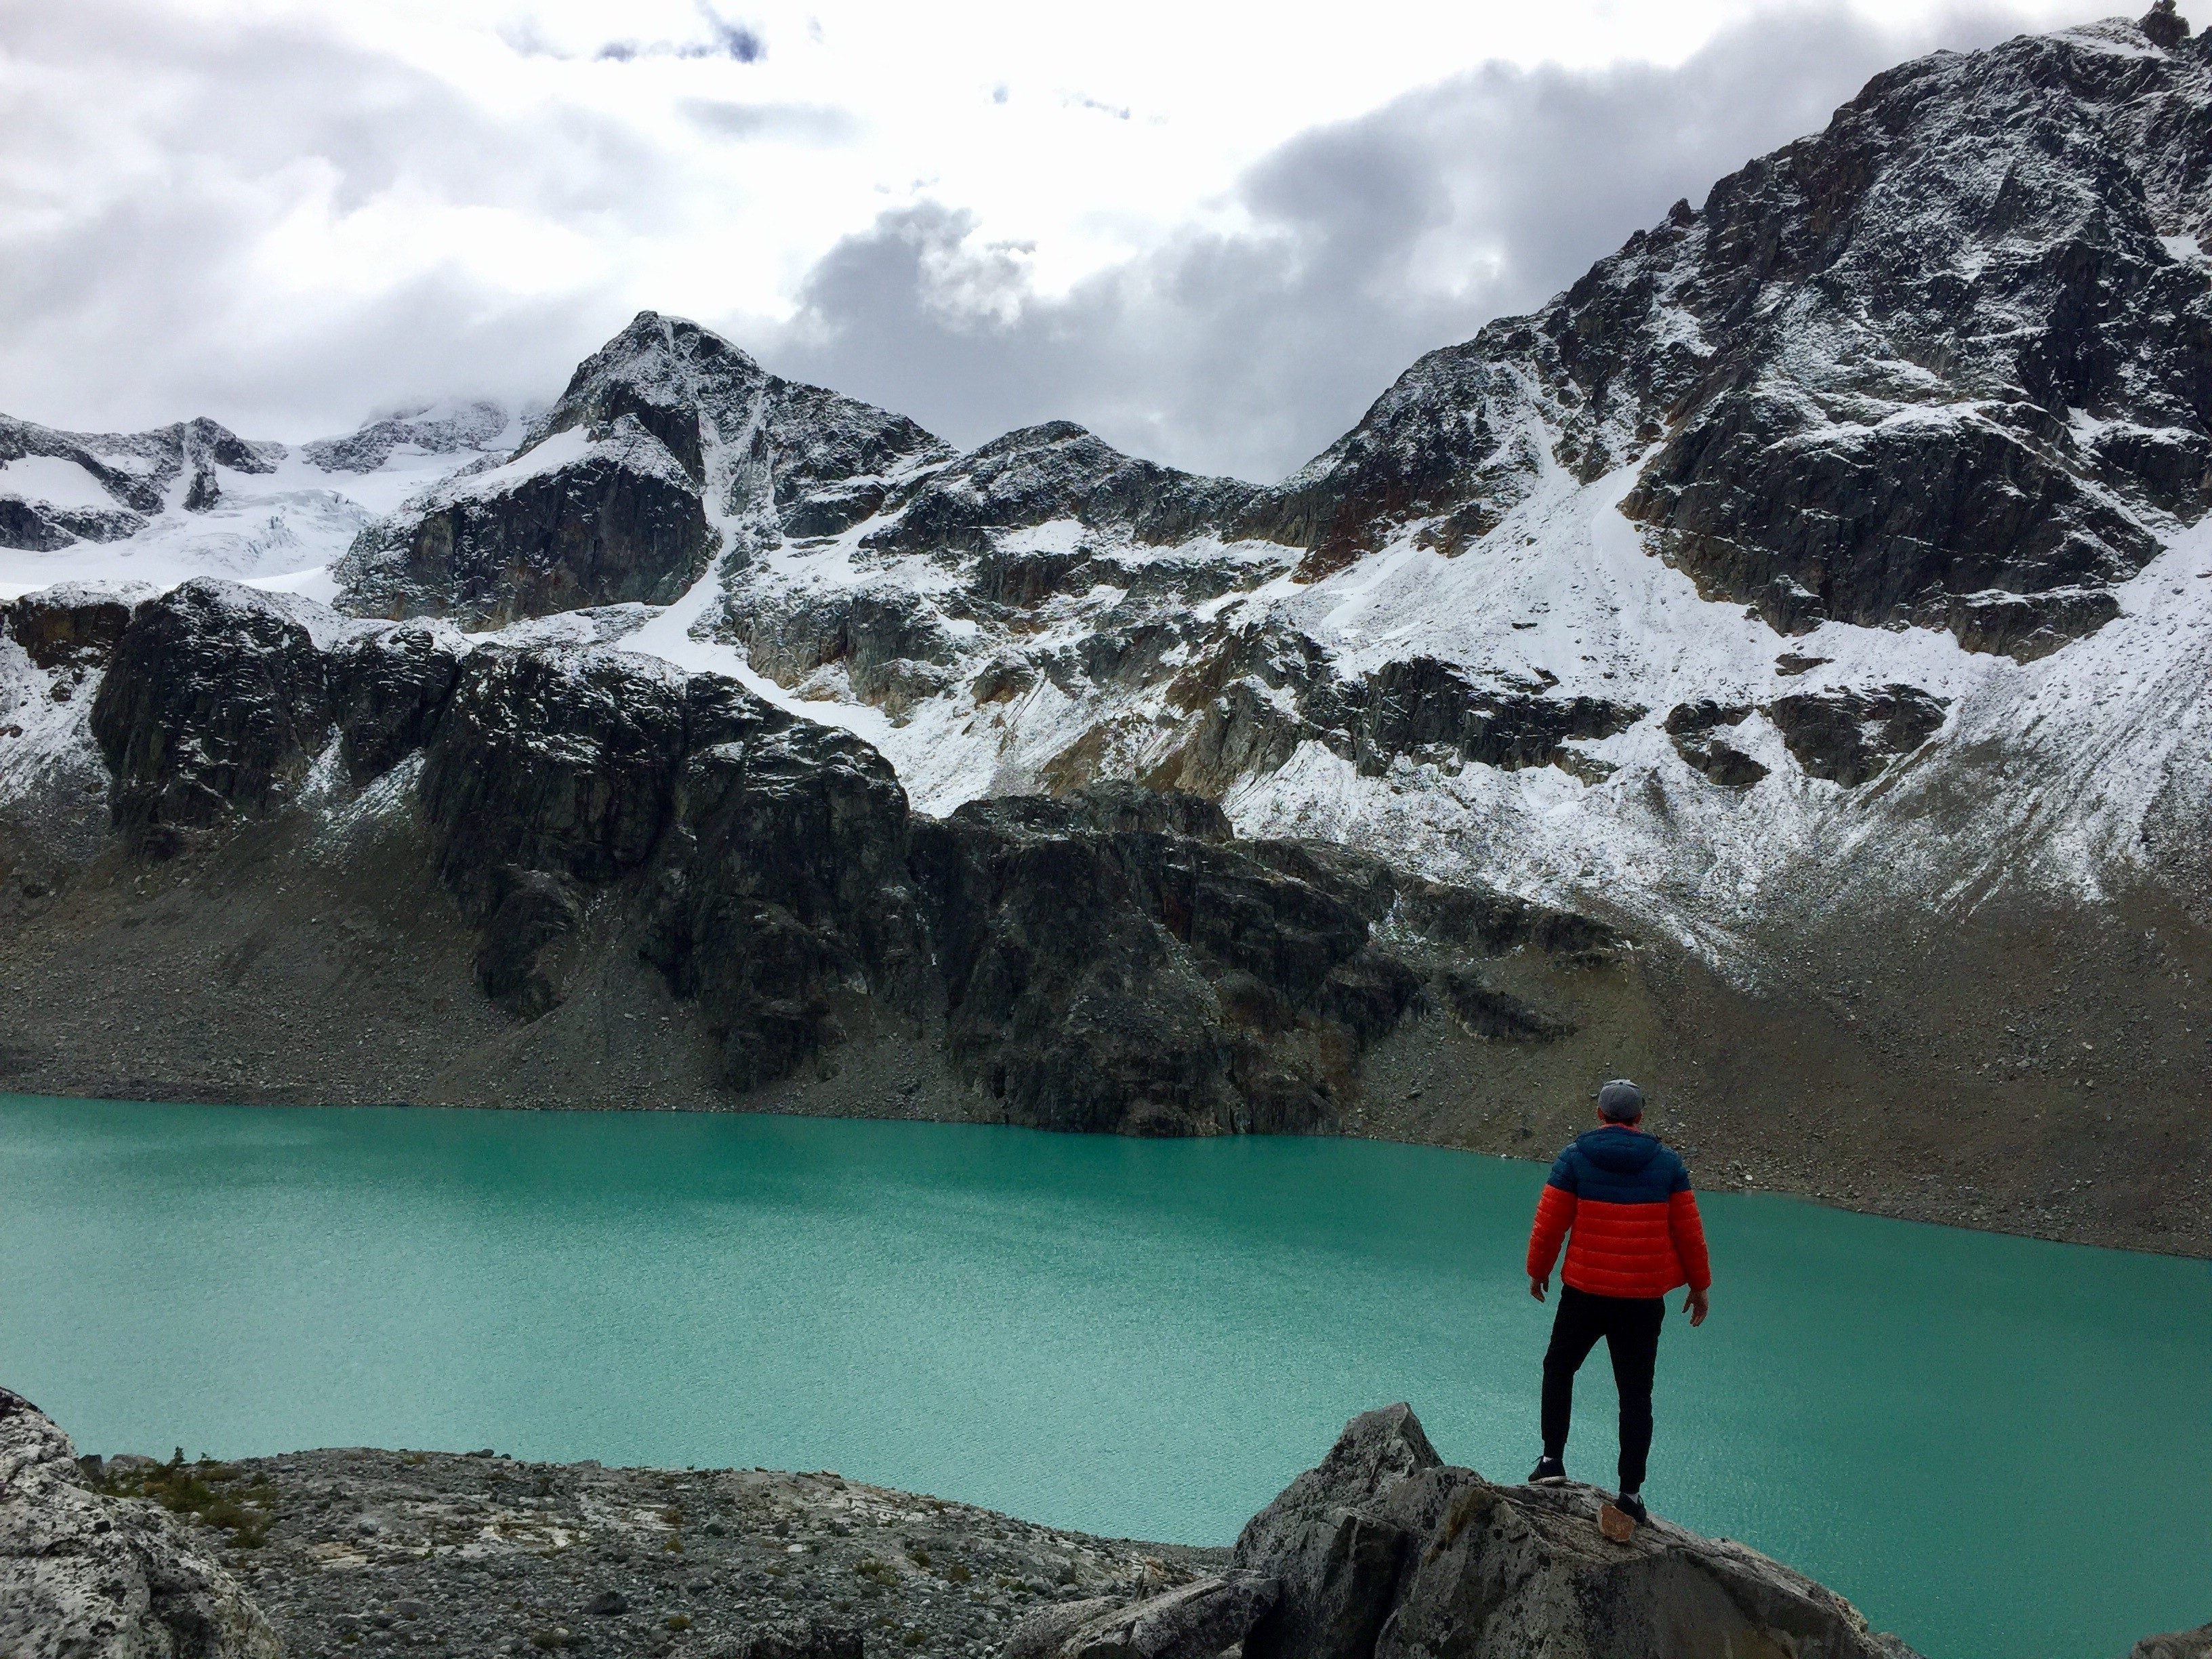 An explorer standing in front of water and a mountain